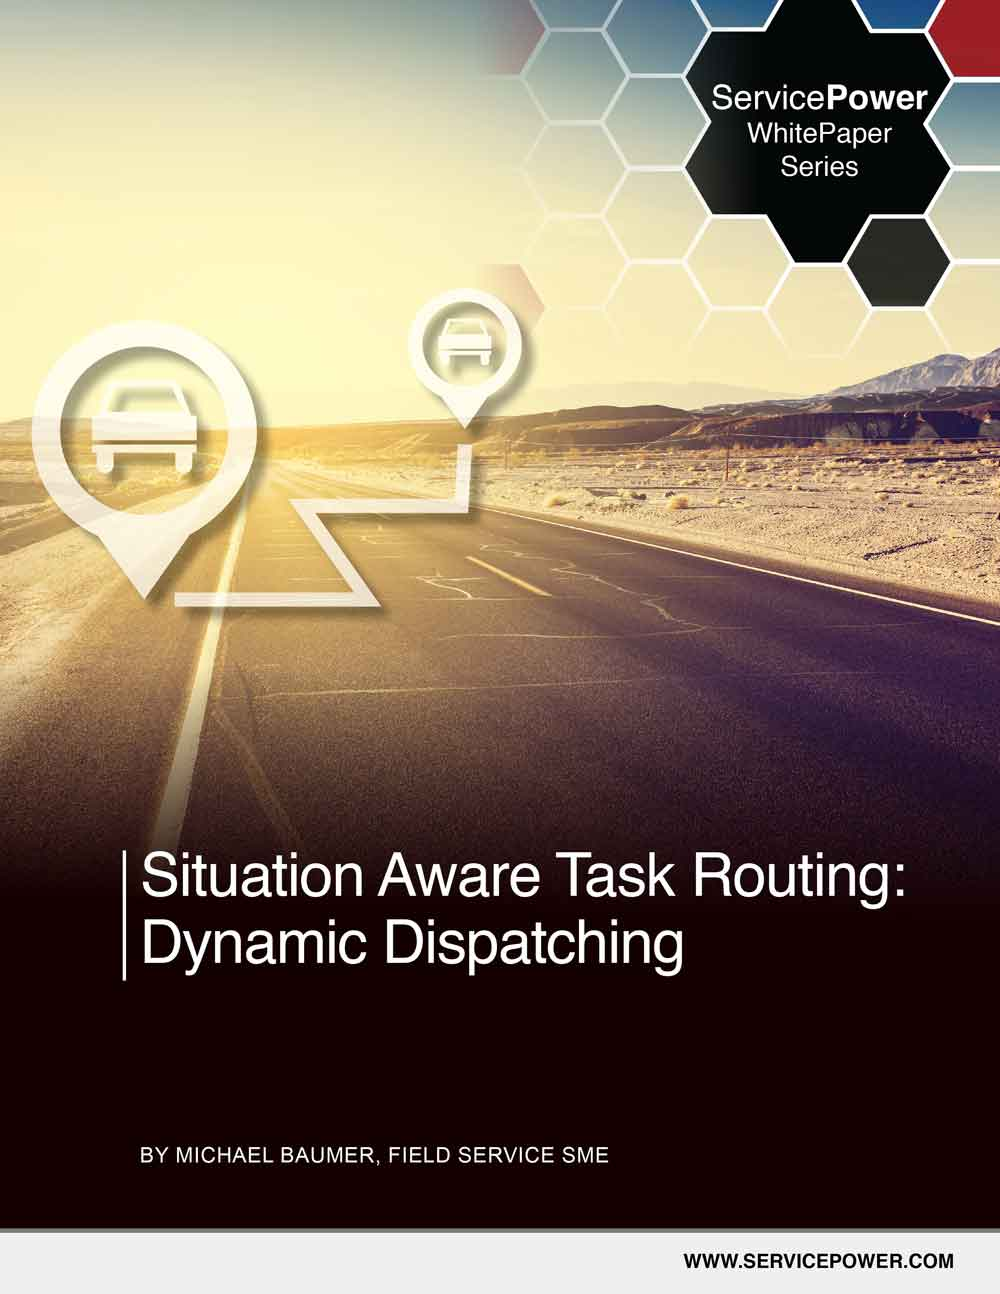 Free White Paper - Situation Aware Task Routing: Dynamic Dispatching